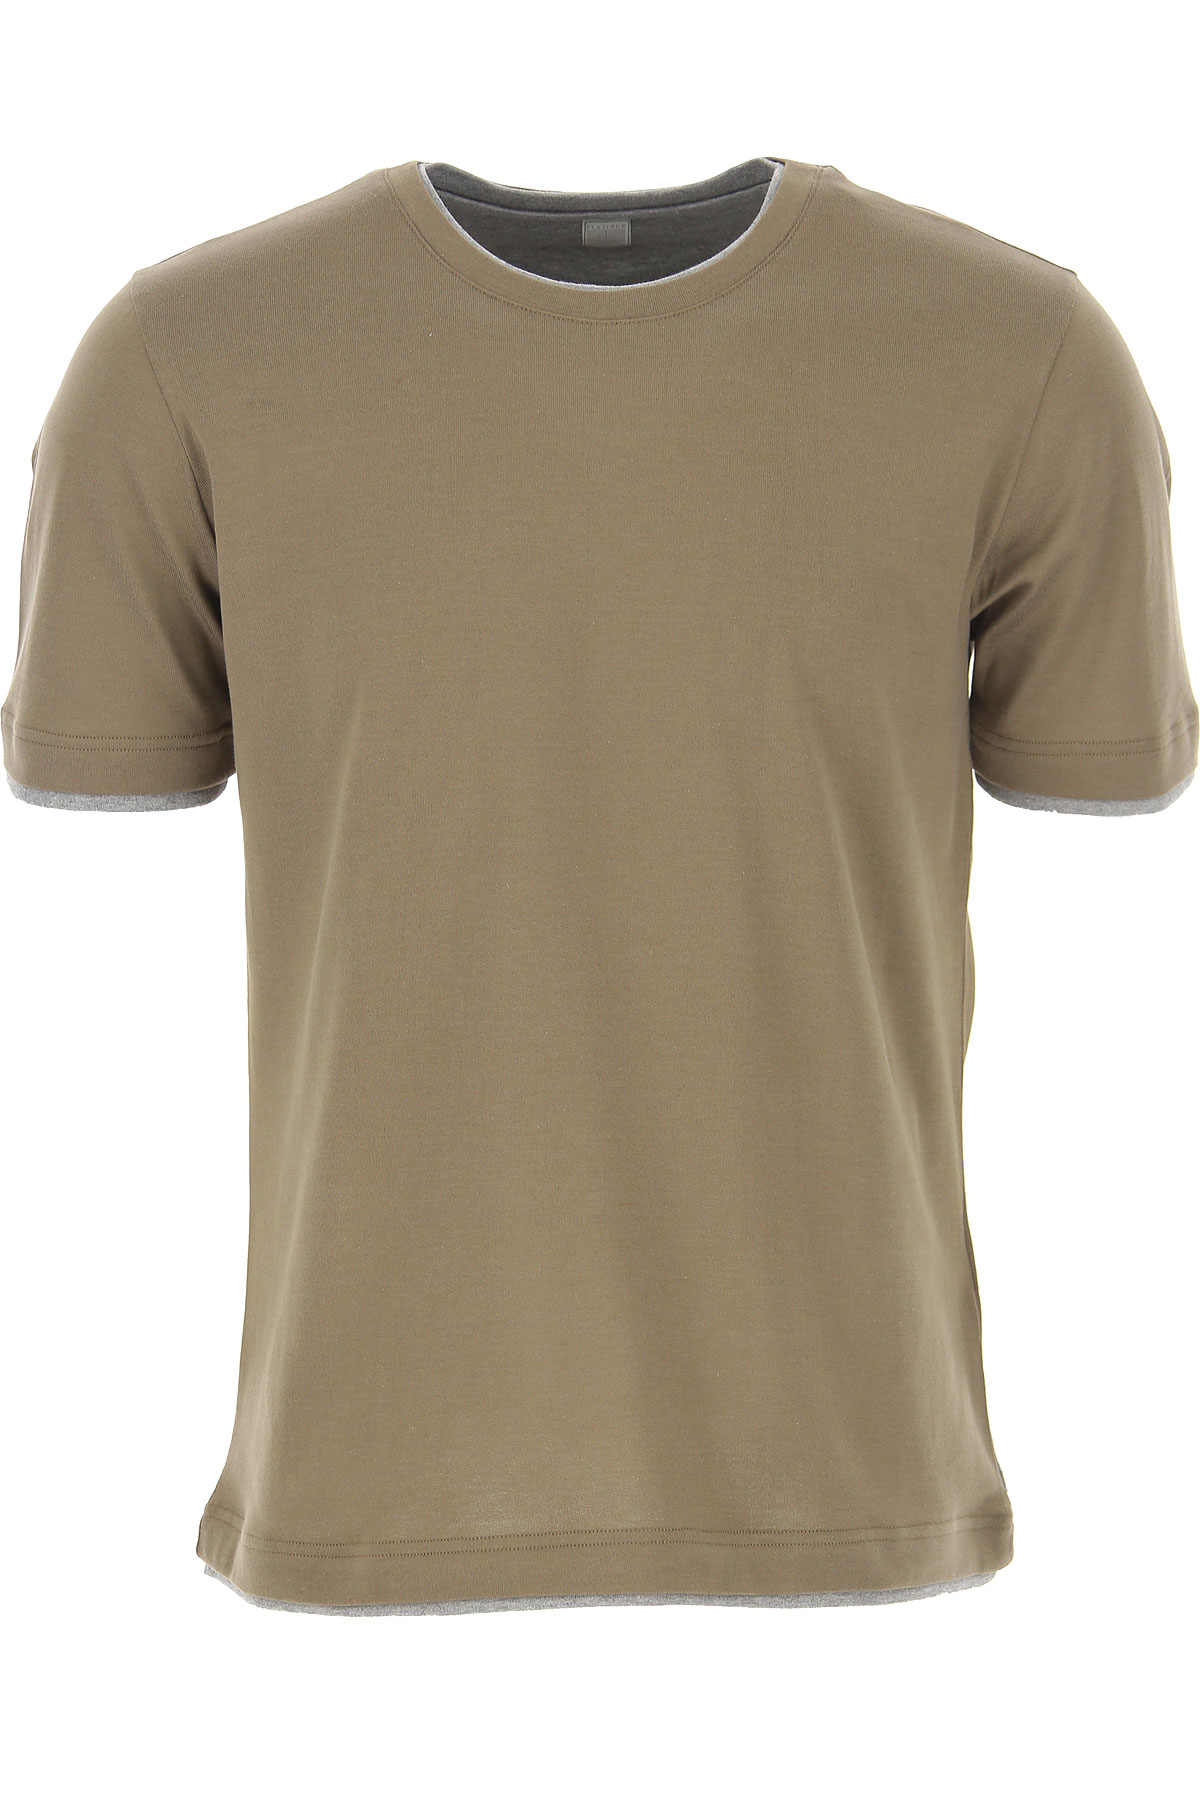 Eleventy T-Shirt for Men On Sale, Military Green, Cotton, 2019, XL XXL